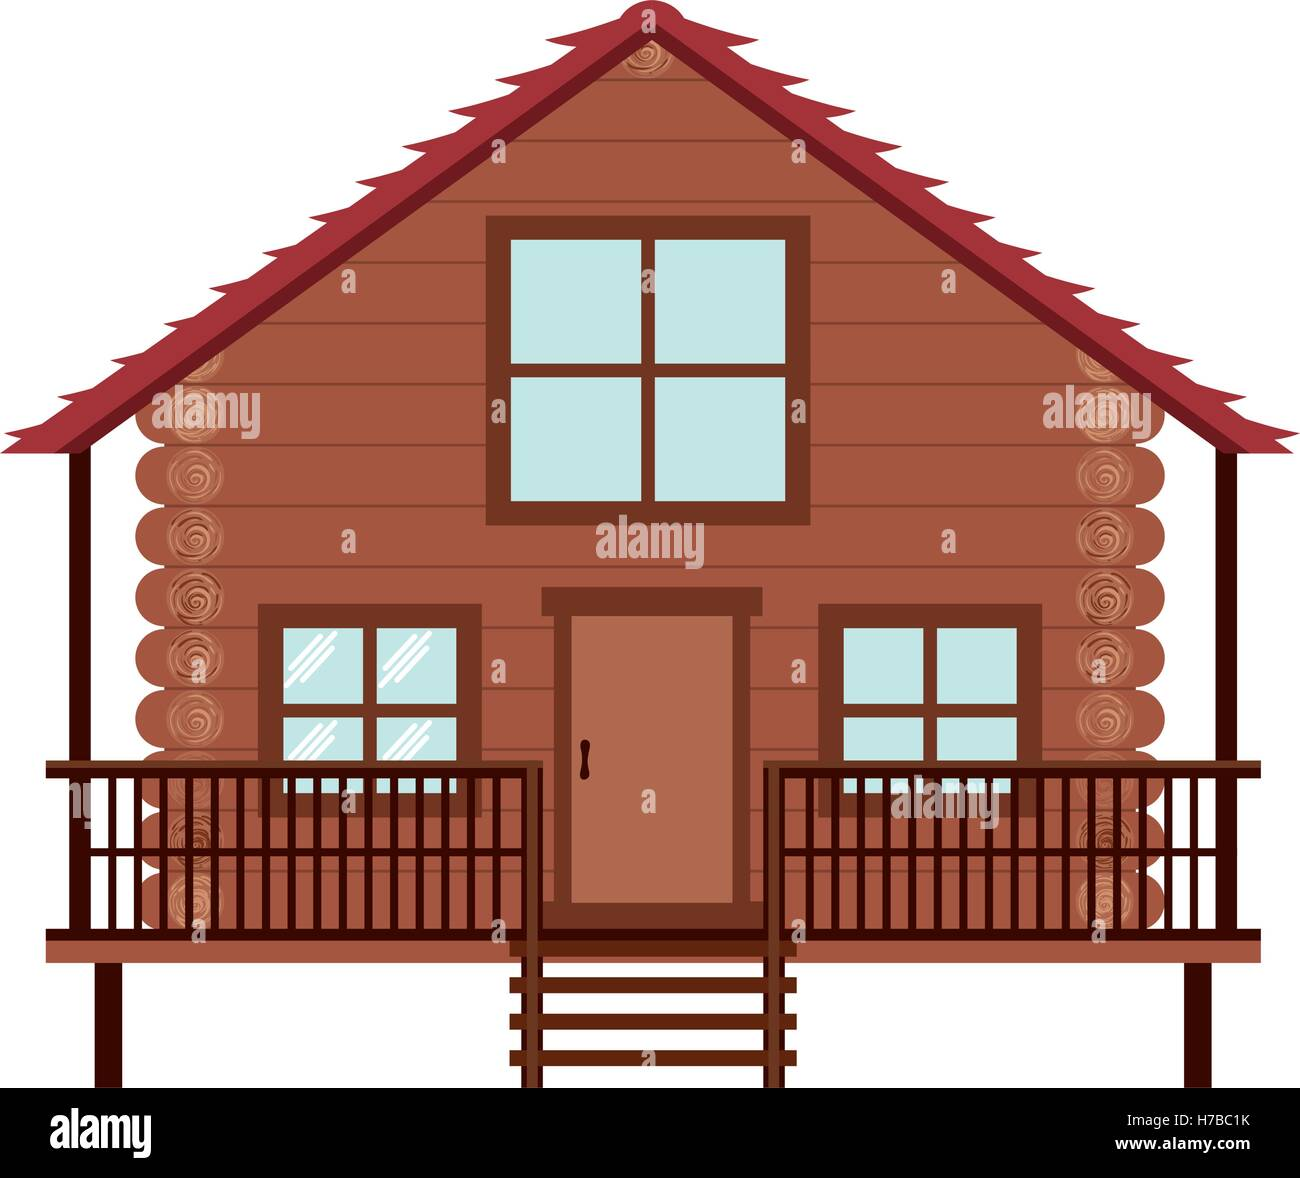 log cabin icon over white background. wooden house. vector illustration - Stock Vector